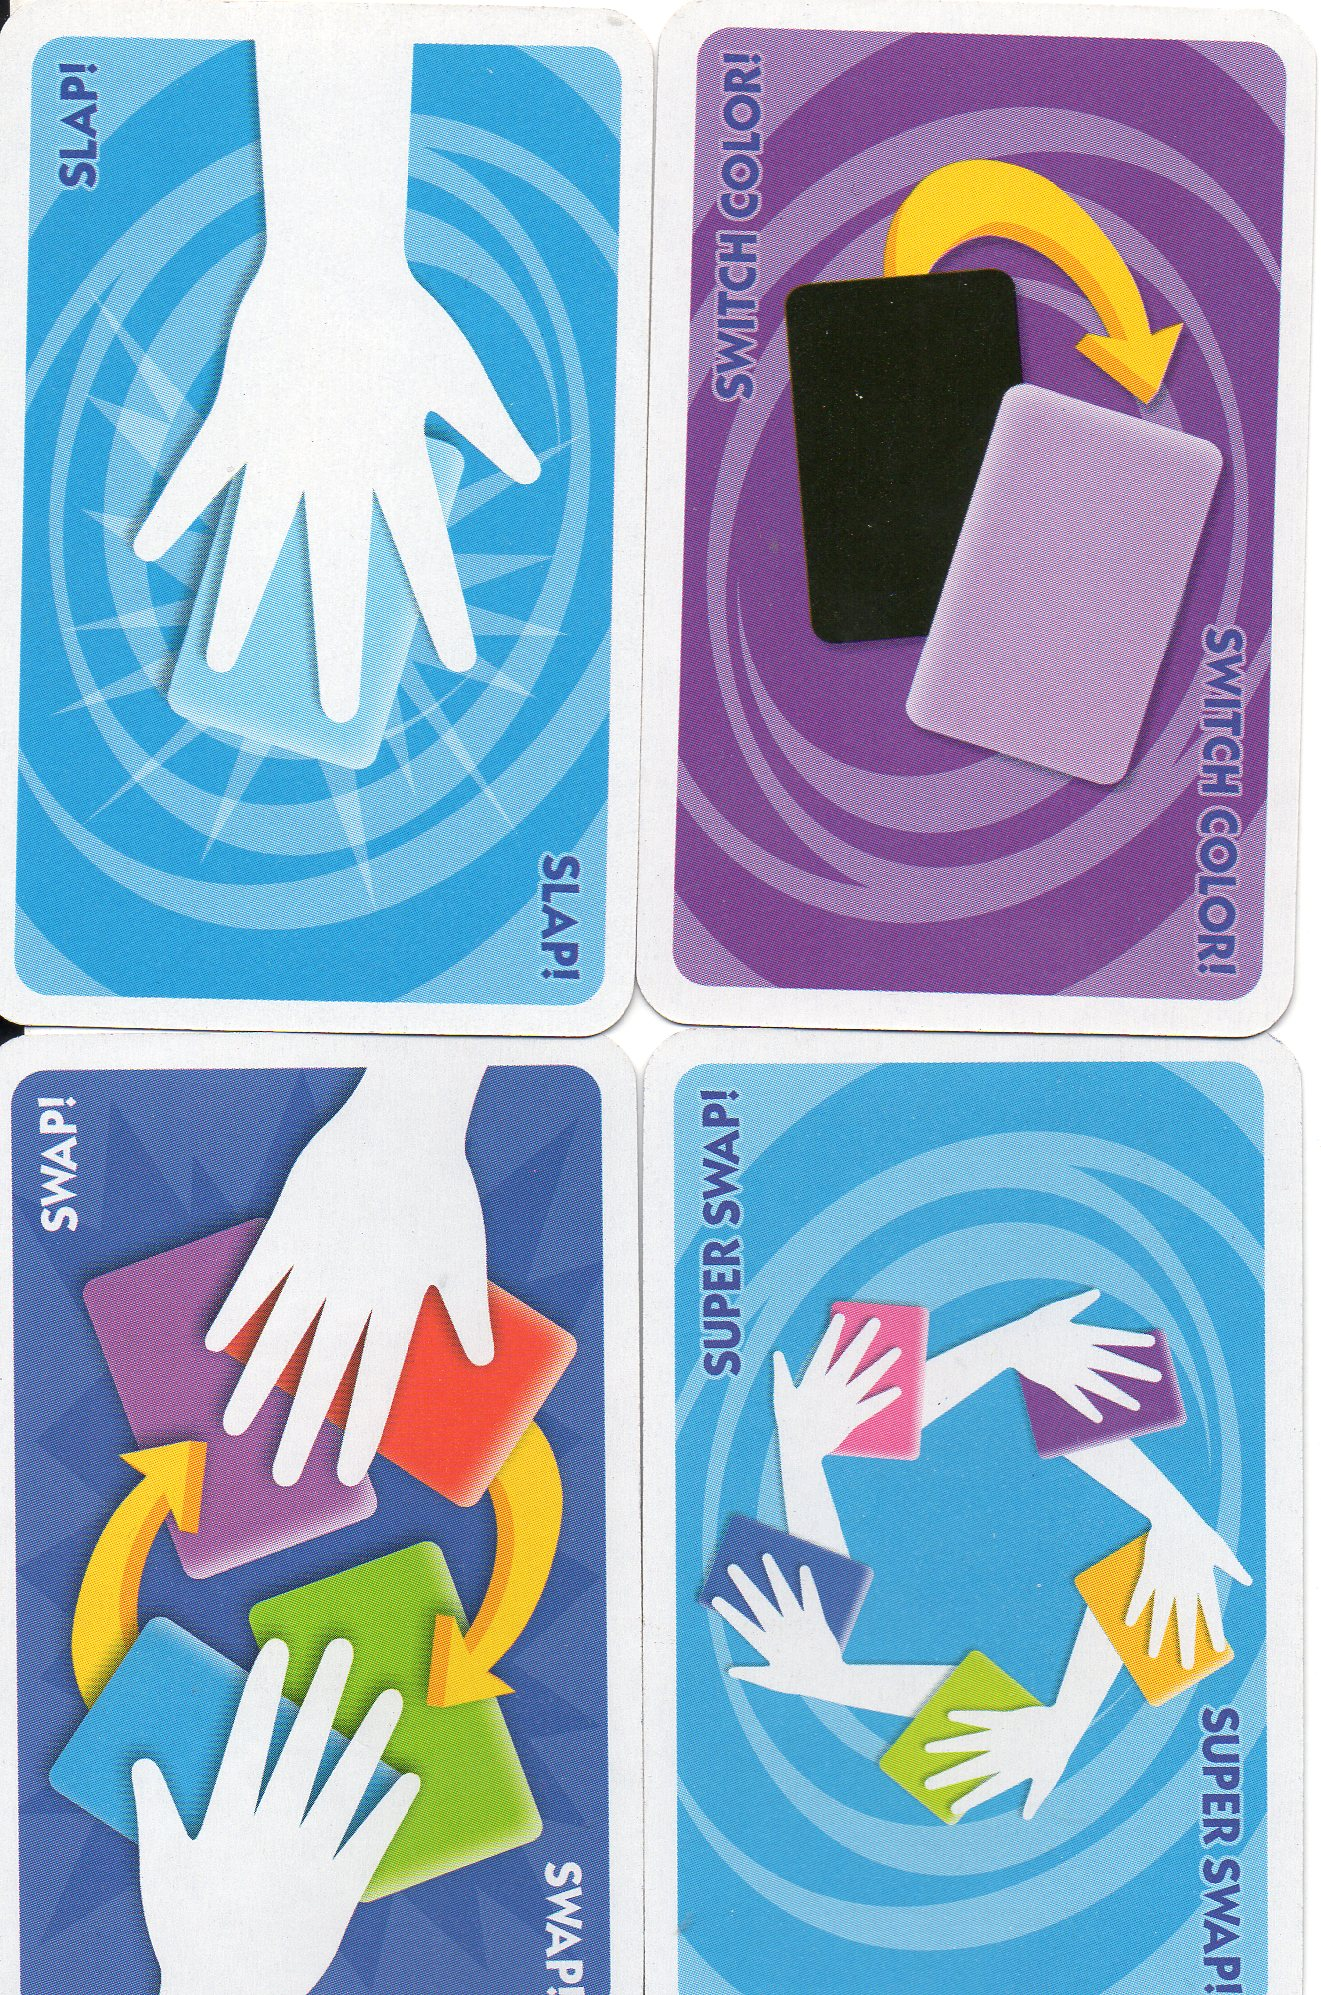 image about Printable Rules for Hand and Foot Card Game titled Exchange! Card Recreation Recommendations: How Do Yourself Engage in the Replace! Card Match